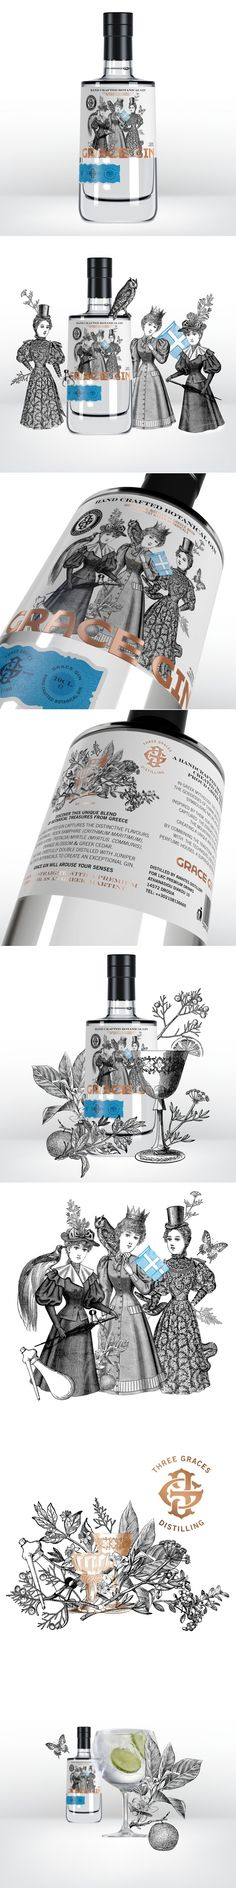 Grace Gin Is an Elegant Small-Batch Gin Directly From Greece — The Dieline | Packaging & Branding Design & Innovation News